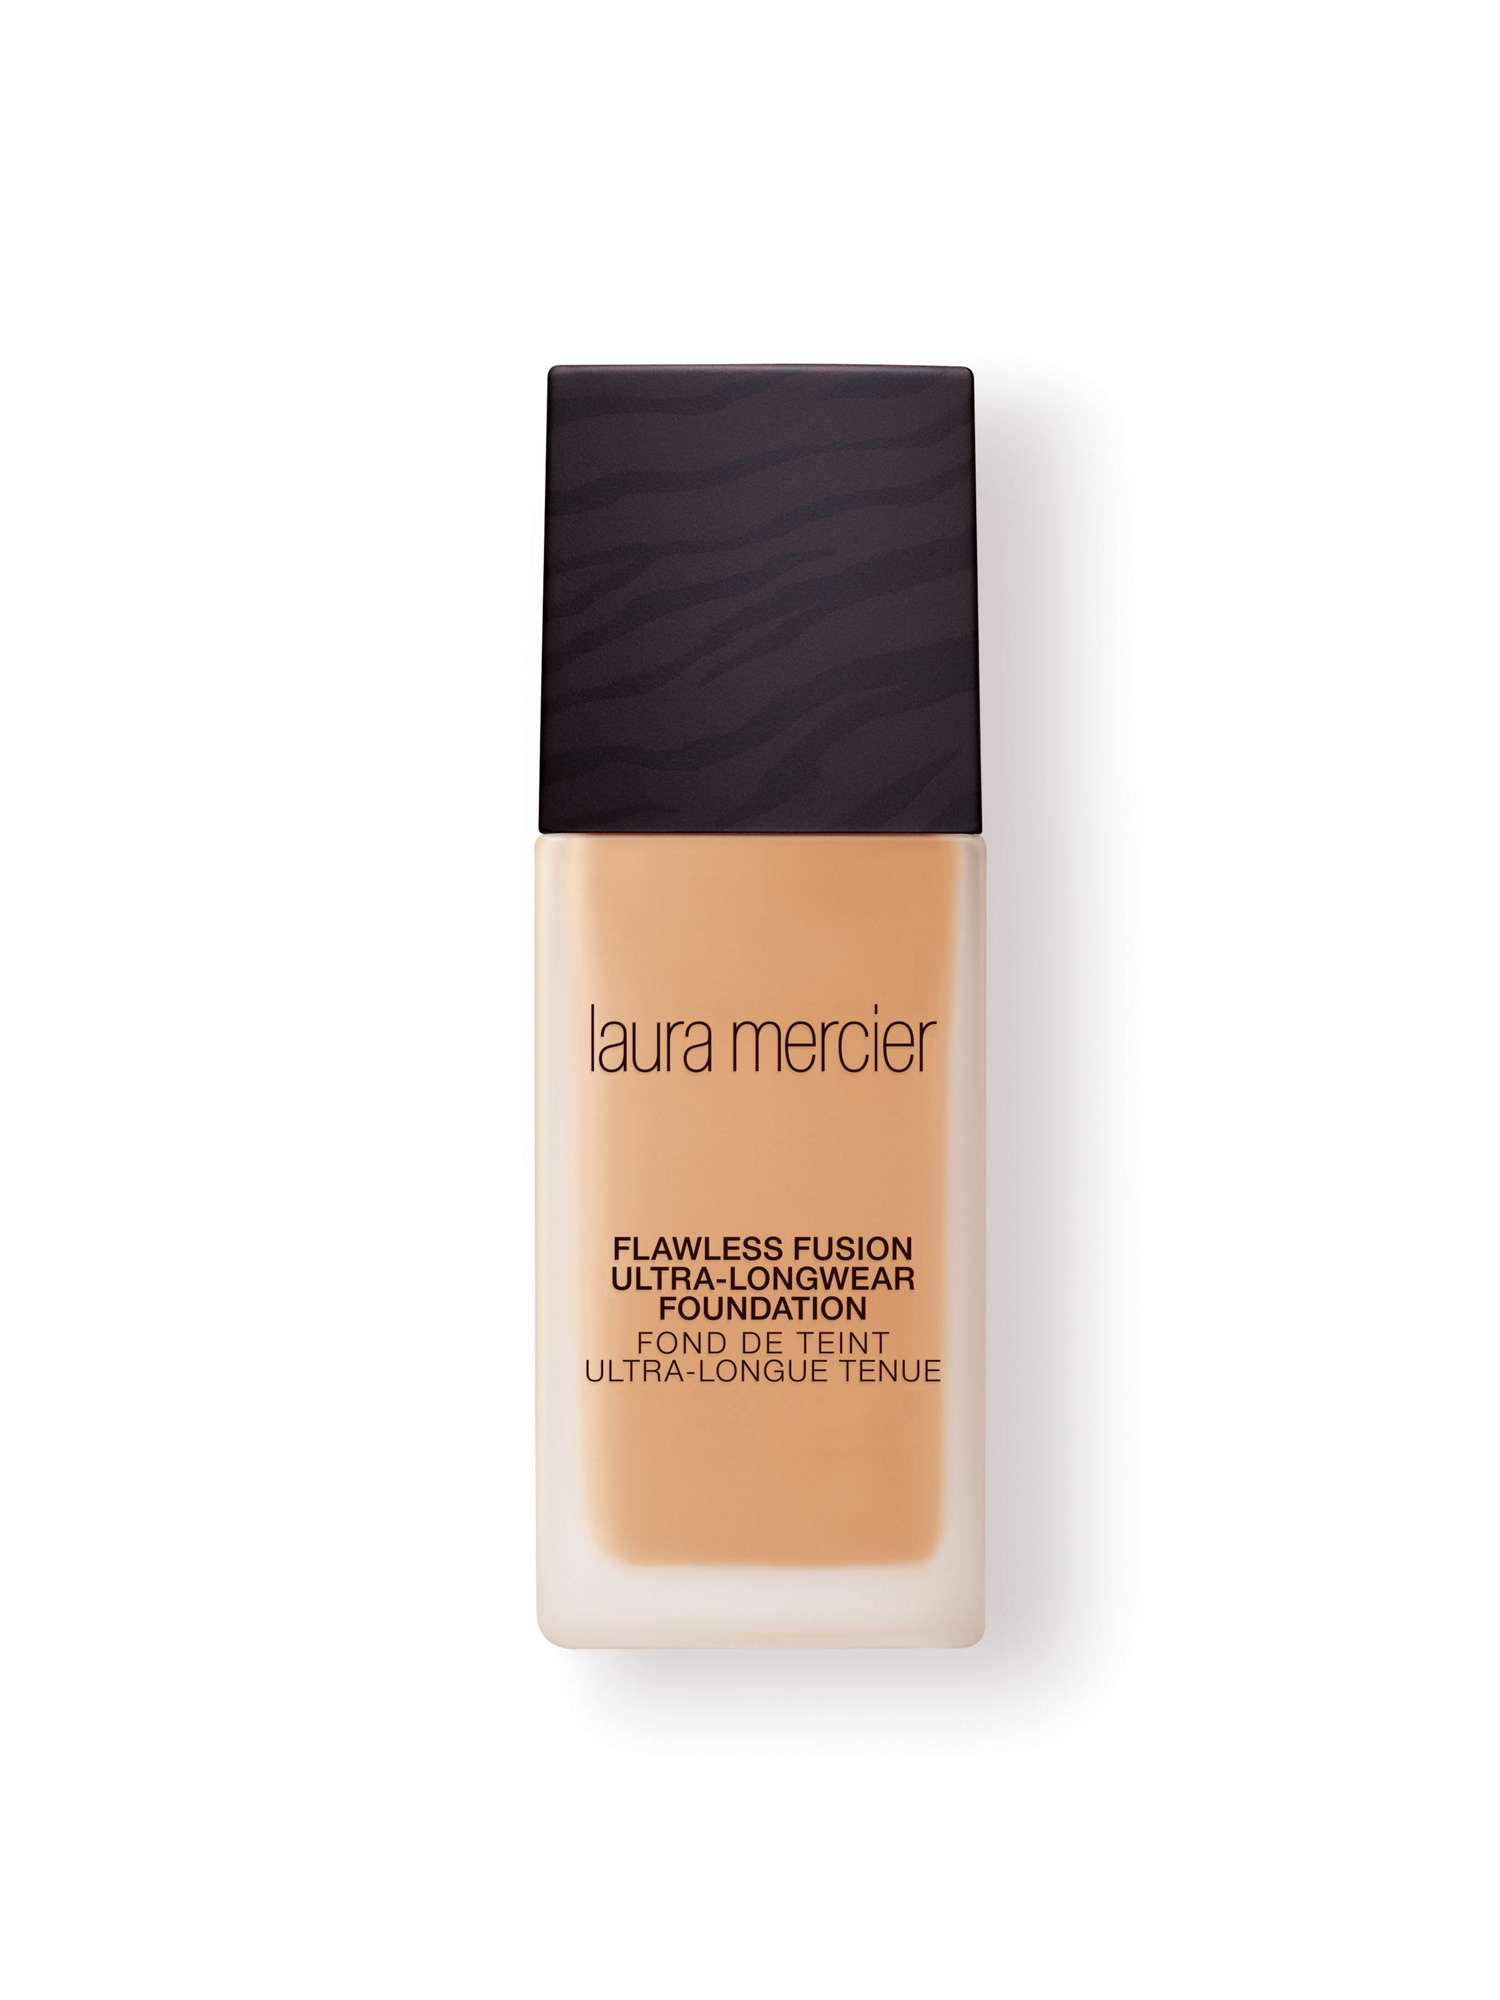 Laura Mercier foundation is one of the best on the market